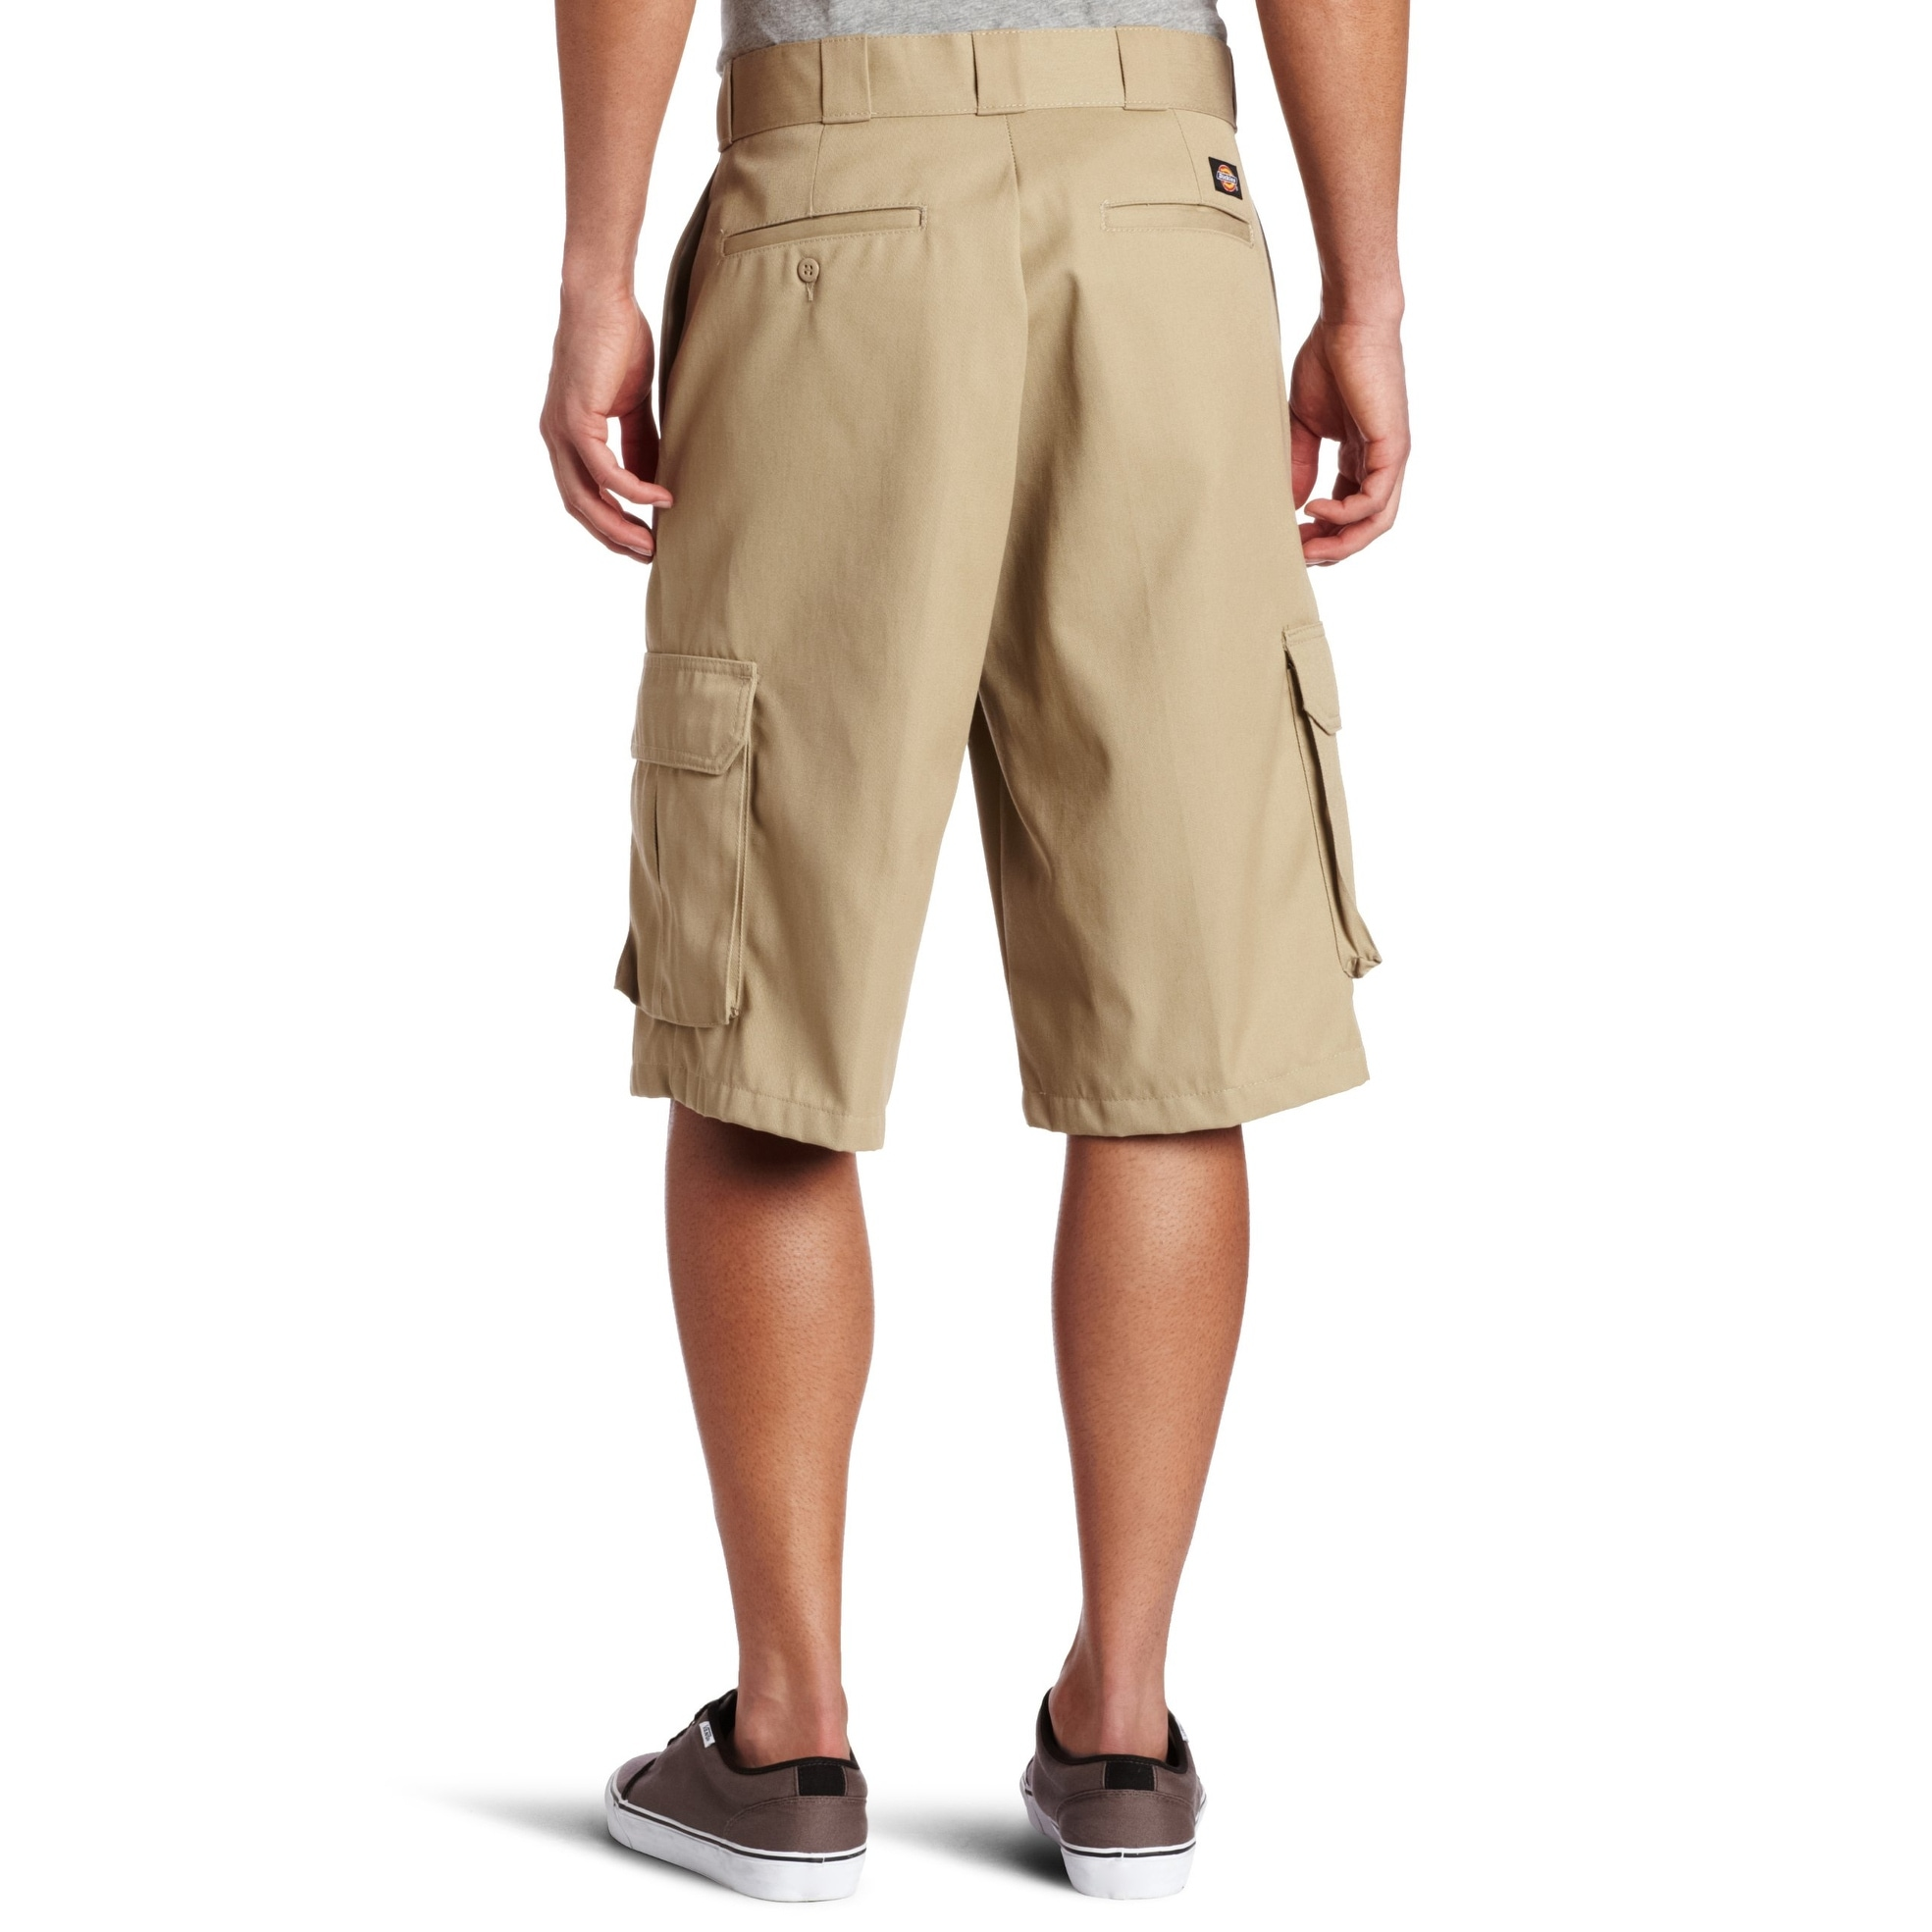 b7526a3efc Shop Dickies Beige Mens Size 32 Loose-Fit Non Wrinkle Cargo Shorts - Free  Shipping On Orders Over $45 - Overstock - 27186908